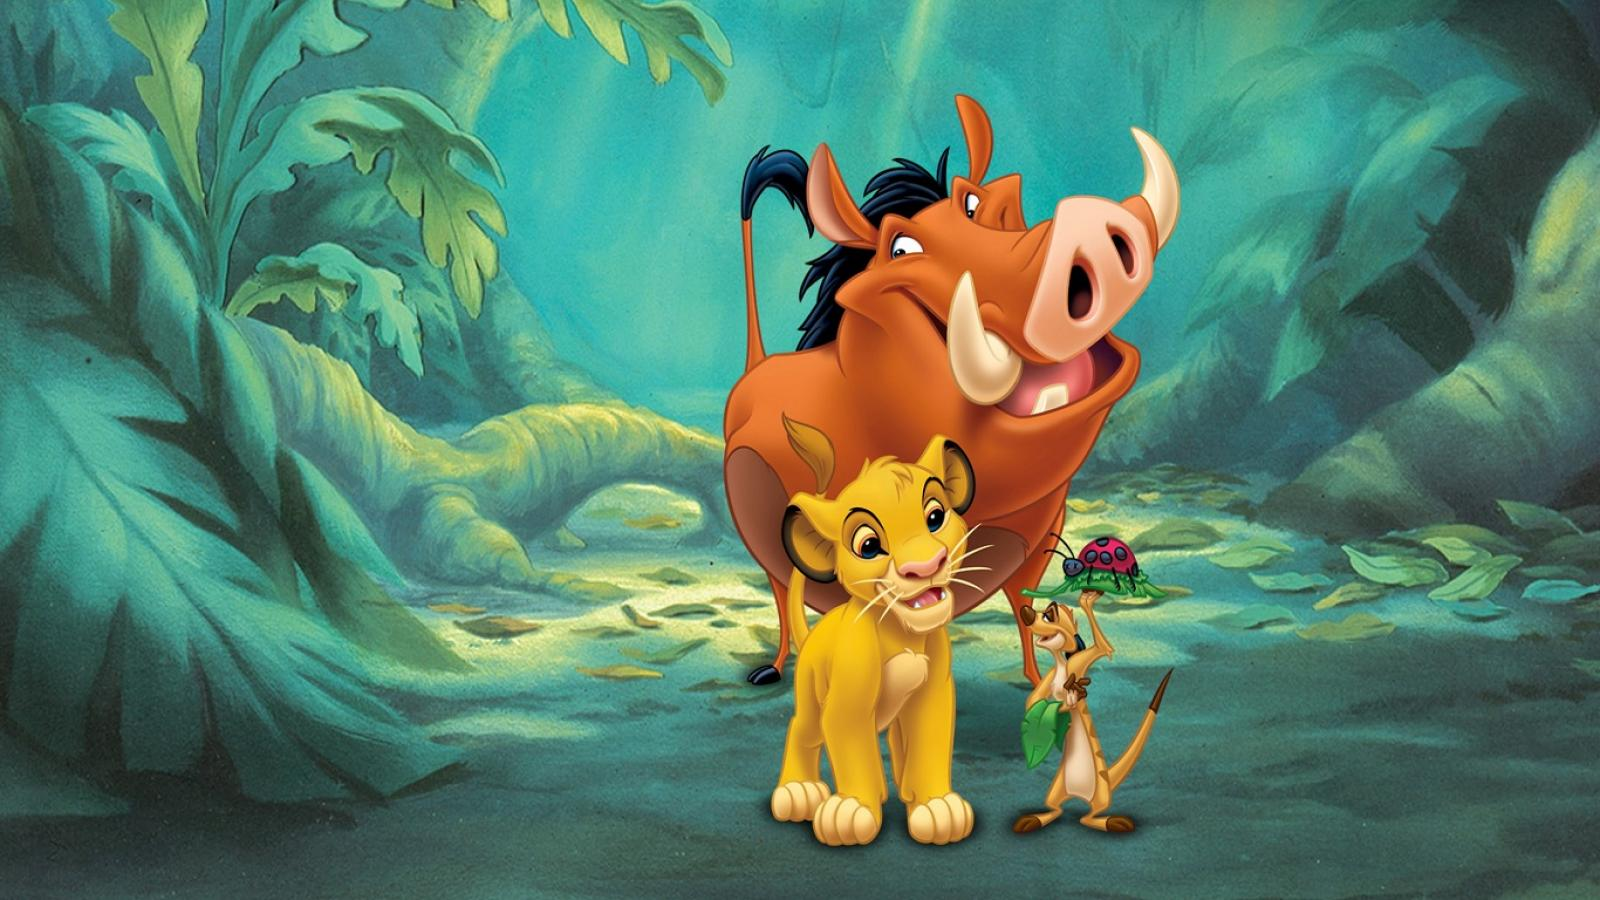 The Lion King Computer Wallpapers Desktop Backgrounds 1366x768 ID 1600x900